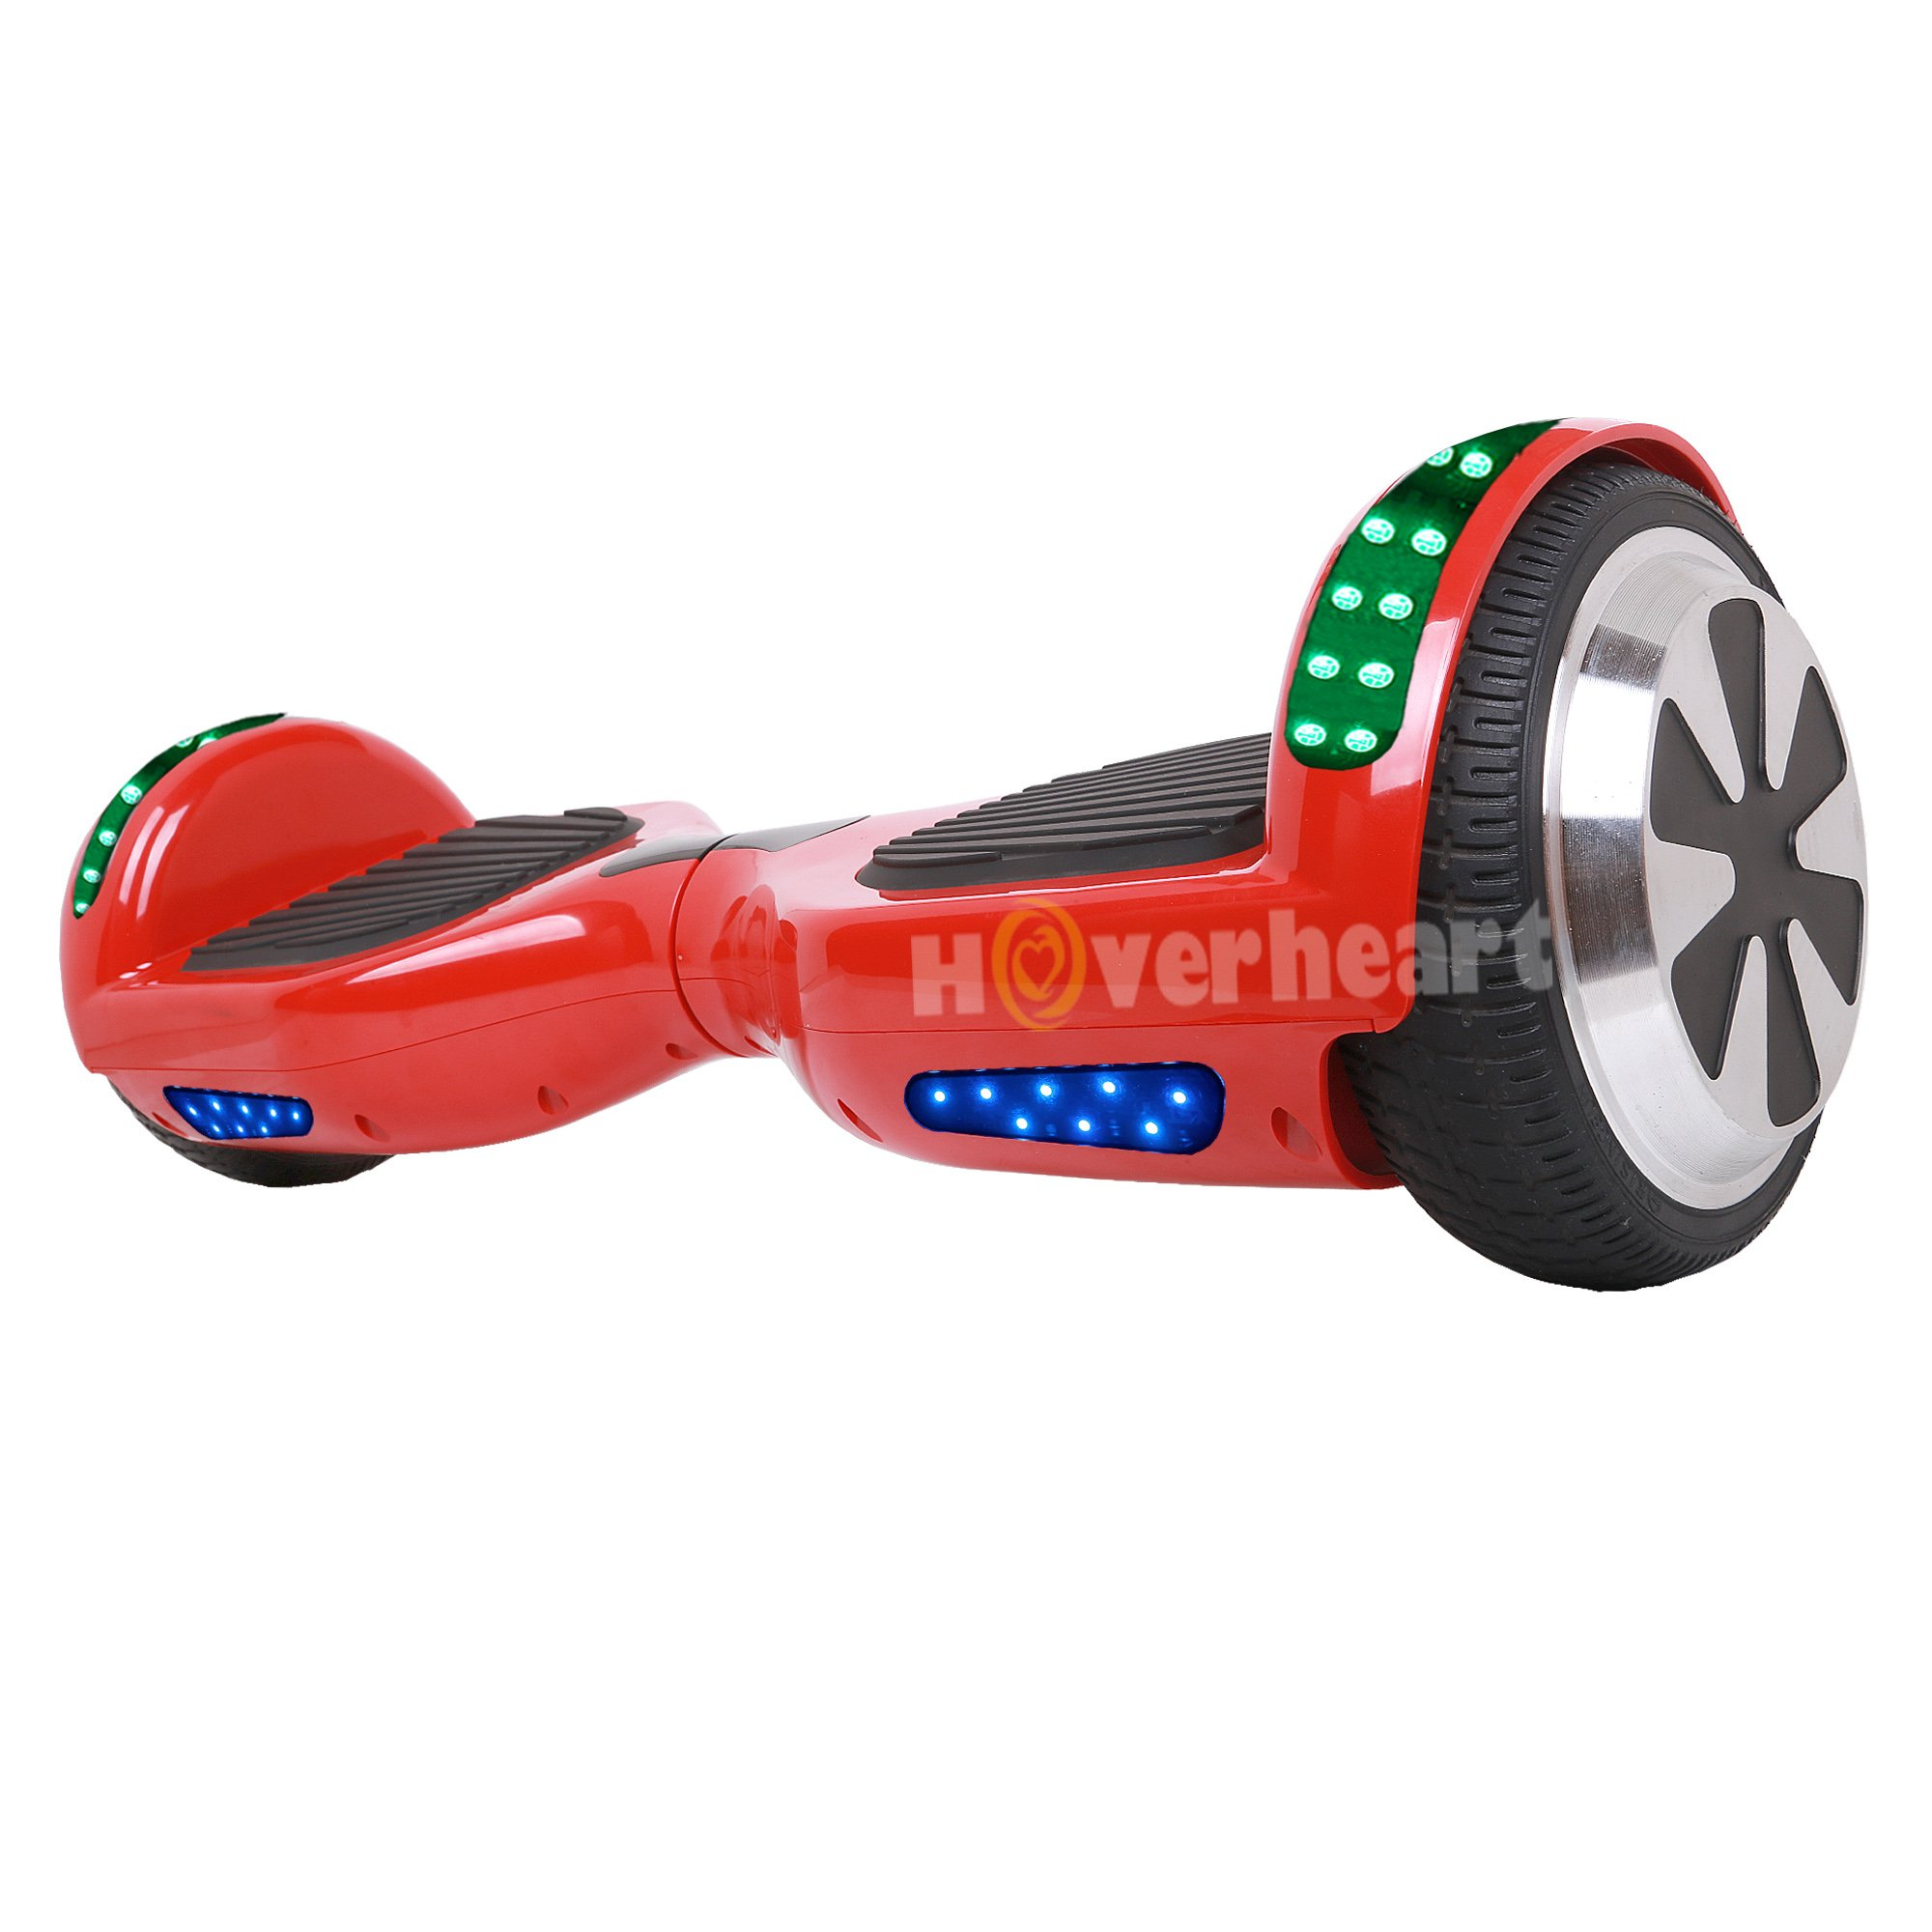 Hoverboard 6.5'' UL 2272 Listed Two-Wheel Self Balancing Electric Scooter with Top LED Light And Bluetooth Speaker (Red) by Hoverheart